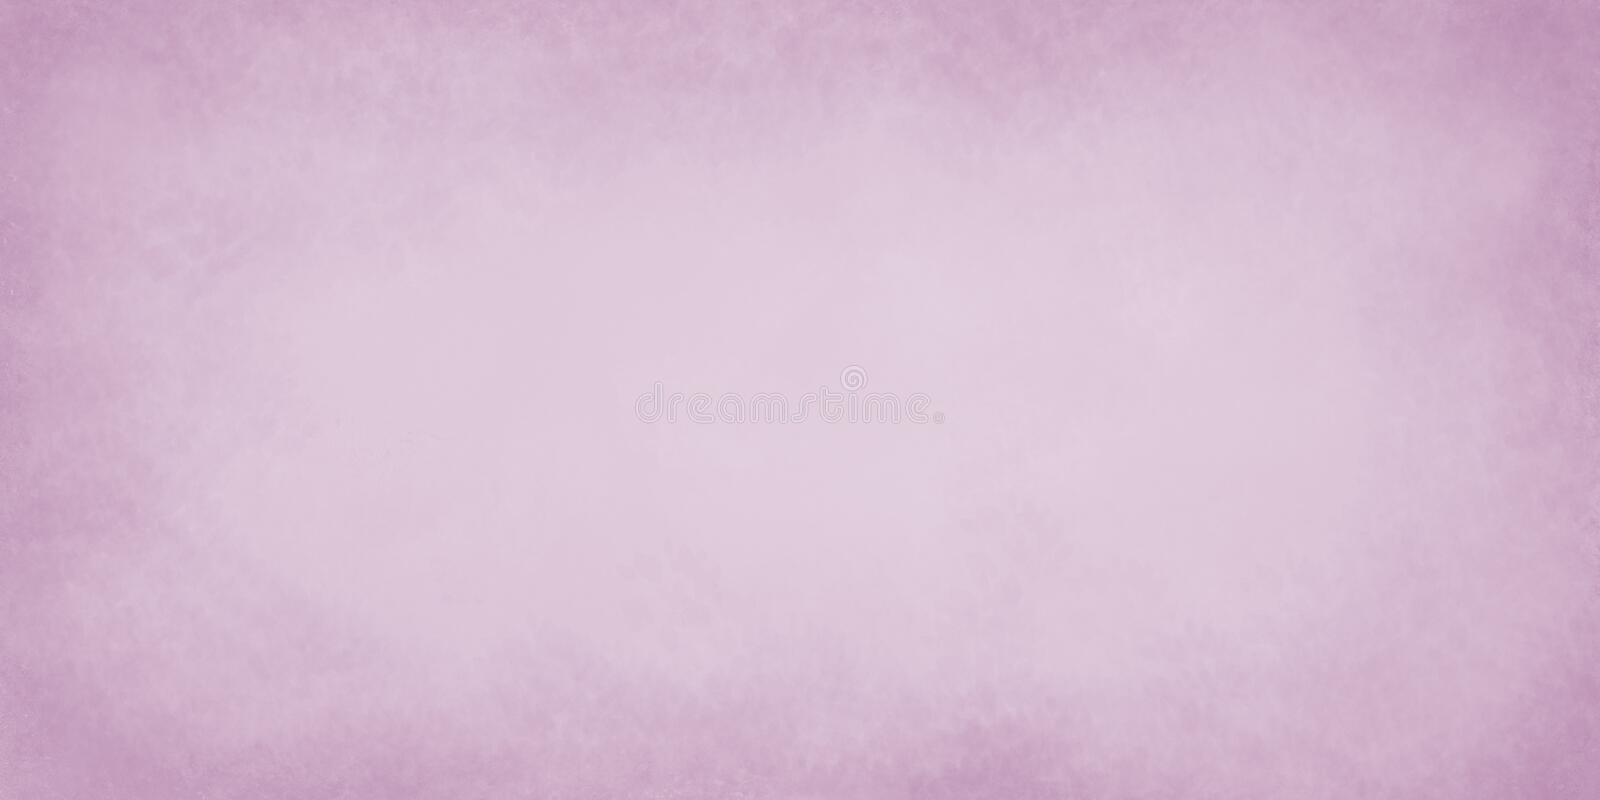 Purple pink background texture, abstract violet color paper with old vintage grunge textured design stock photos